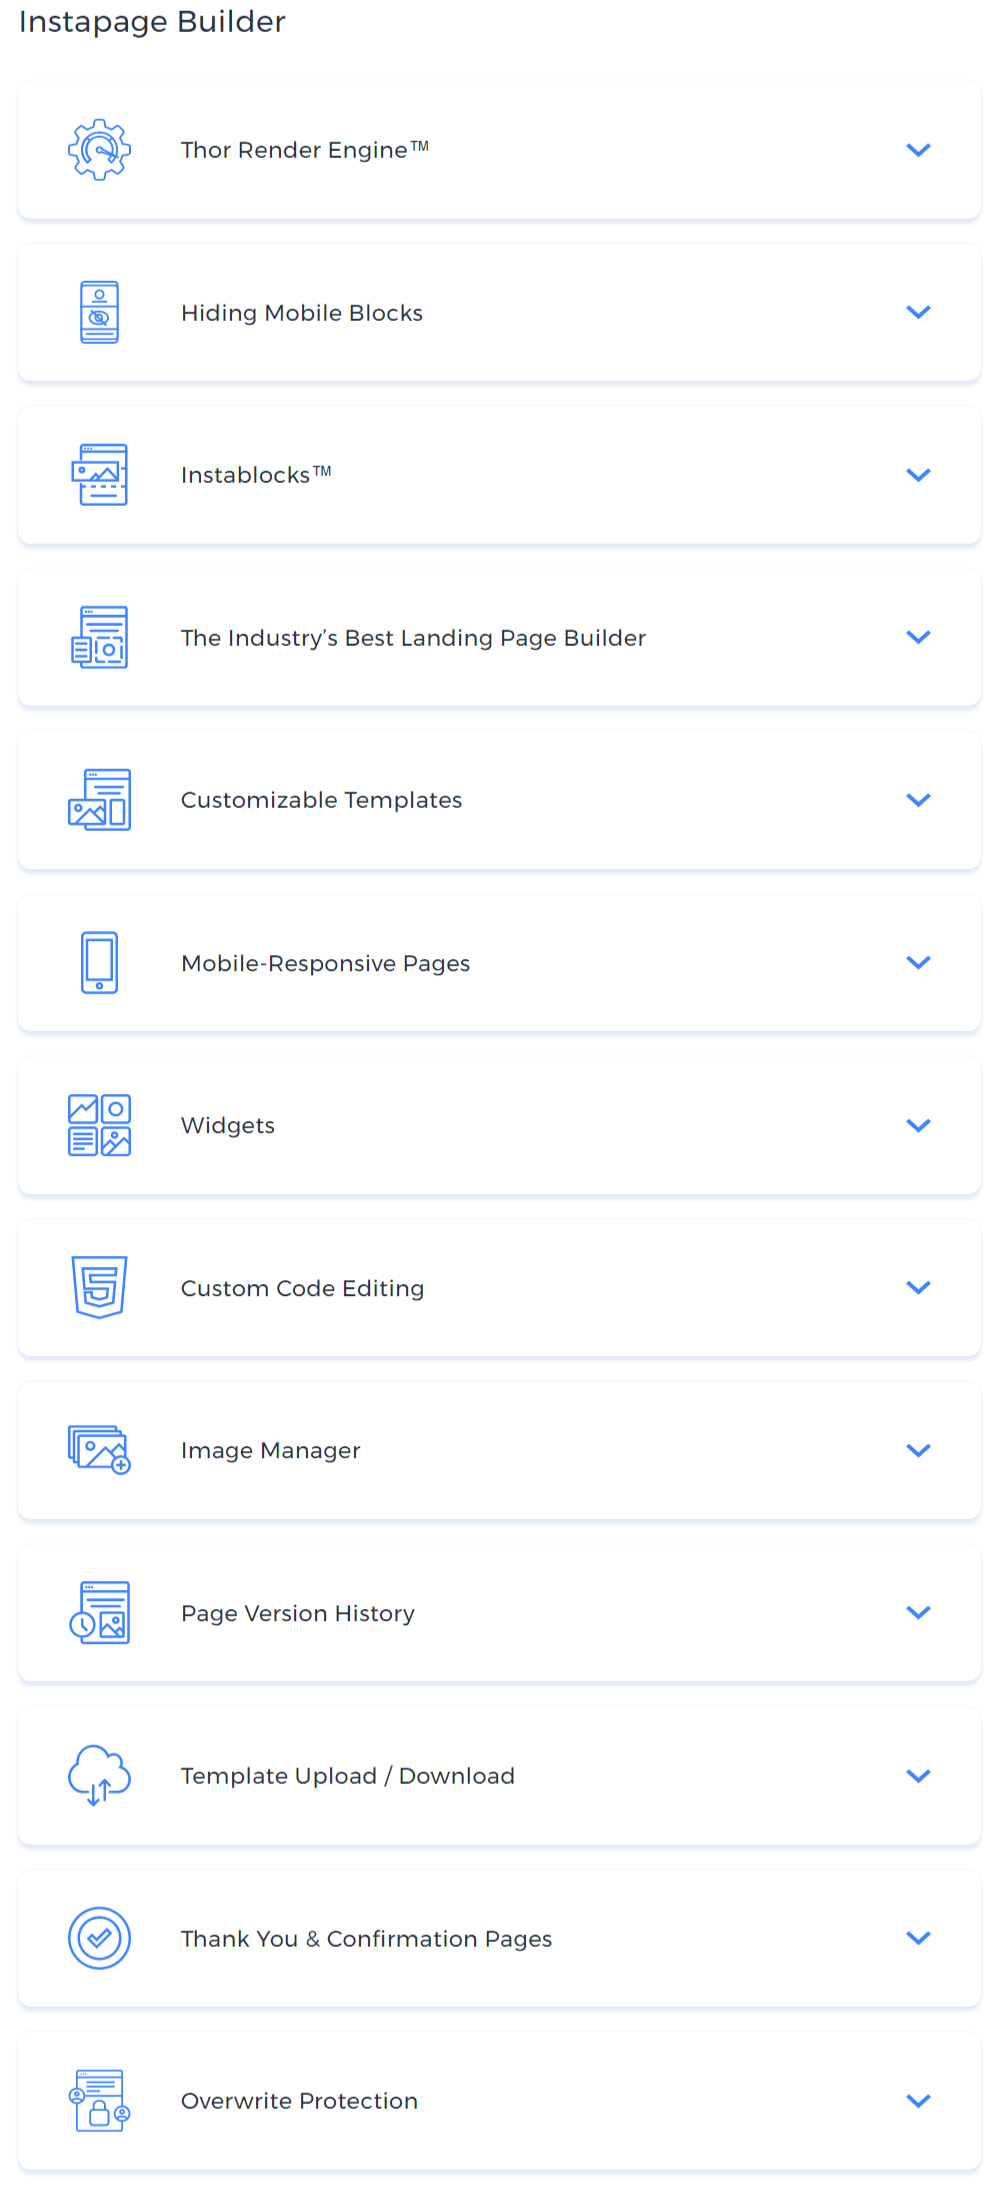 instapage builder features